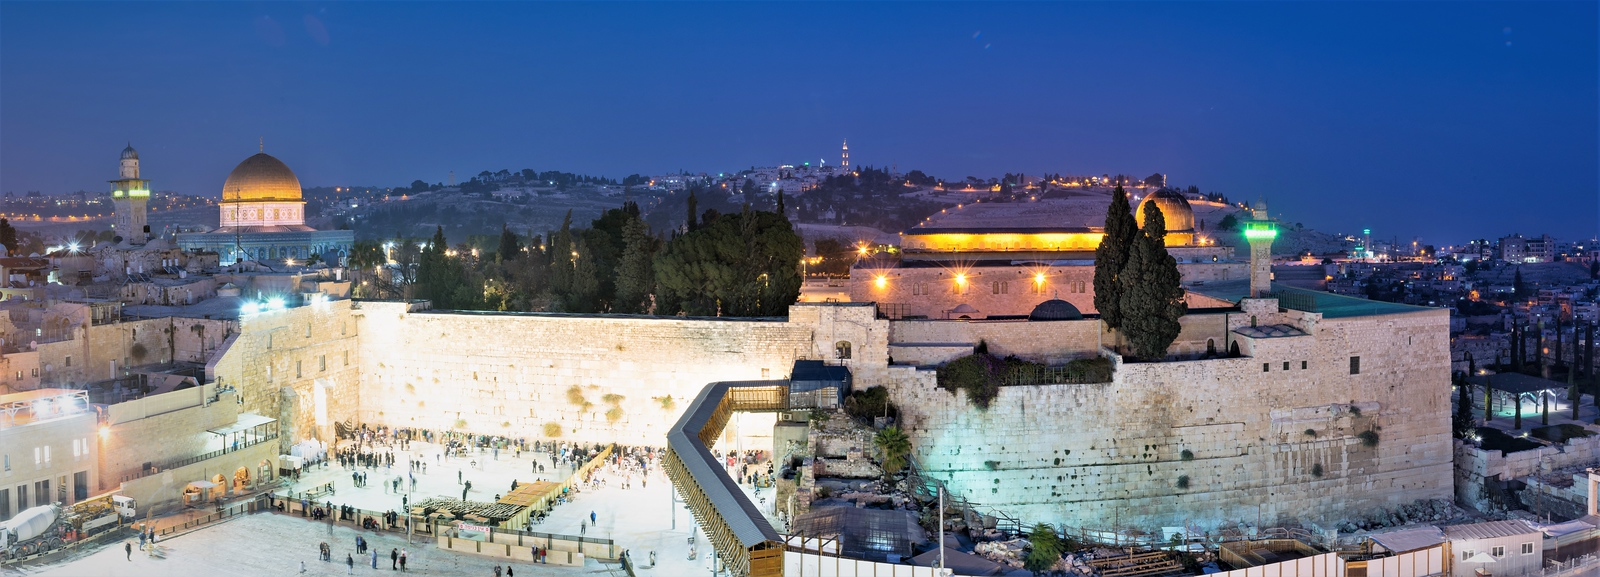 Western Wall and Temple Mounts